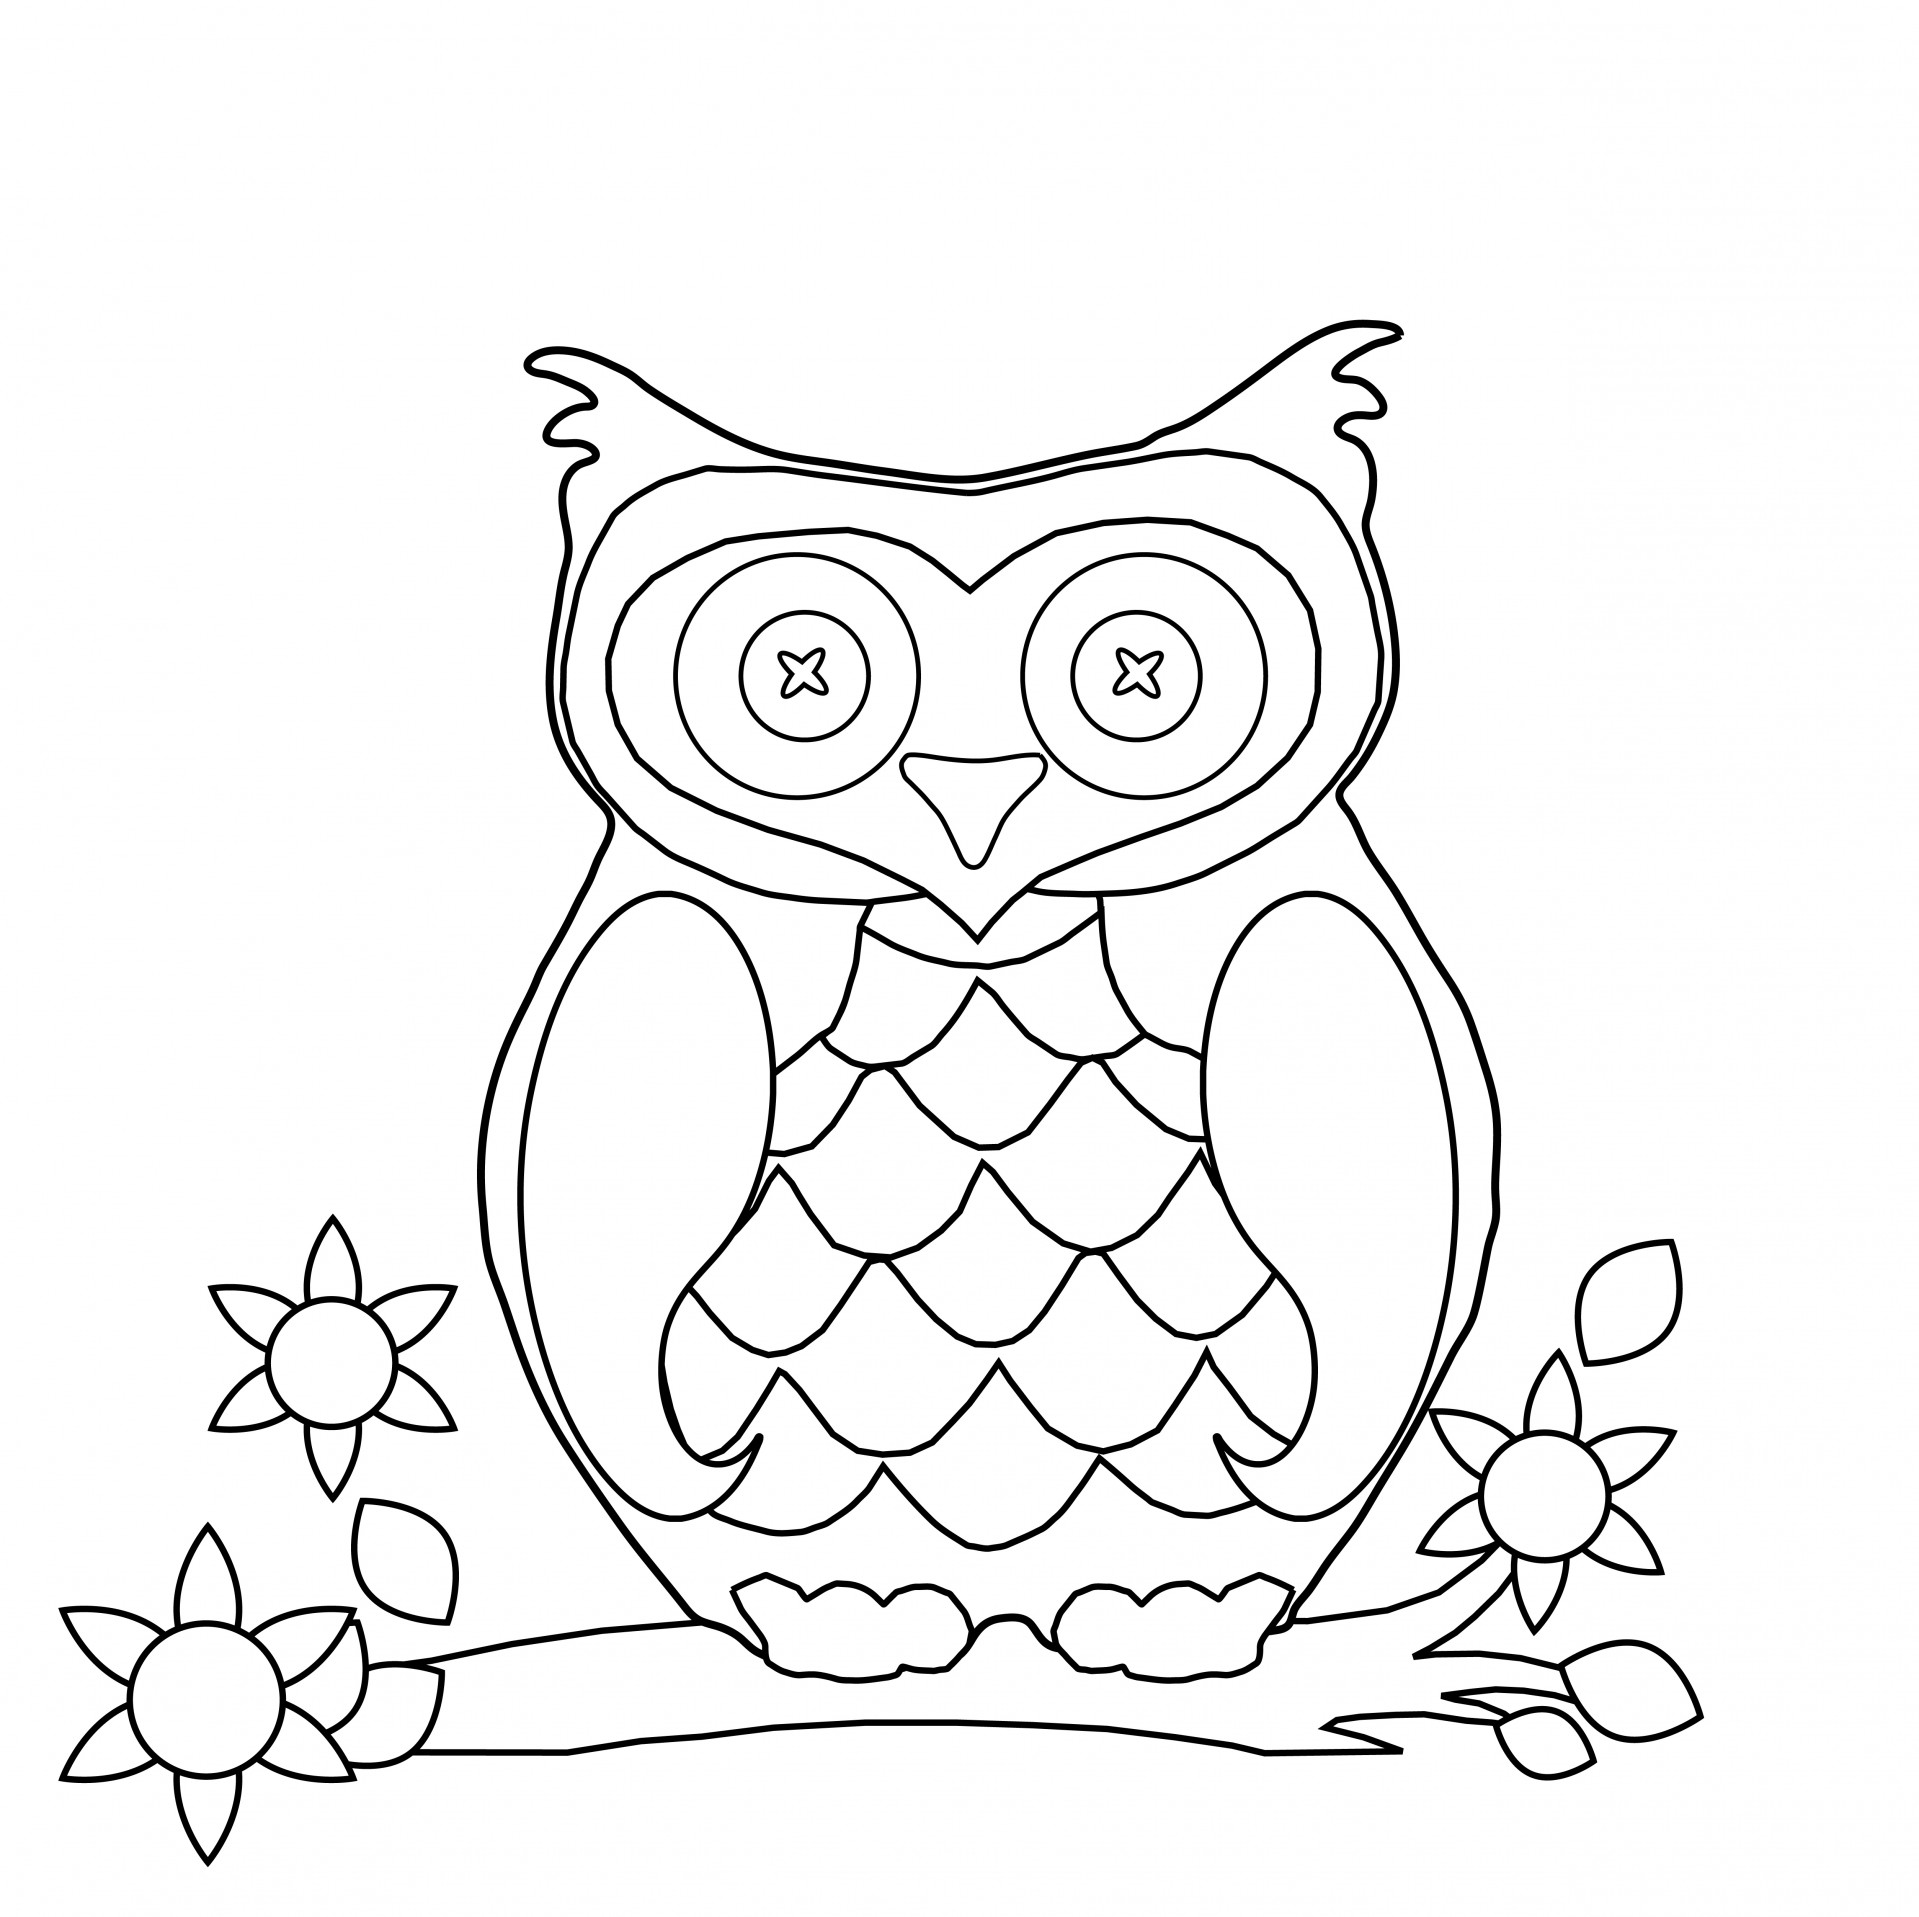 free coloring pages online free printable cinderella coloring pages for kids online free coloring pages